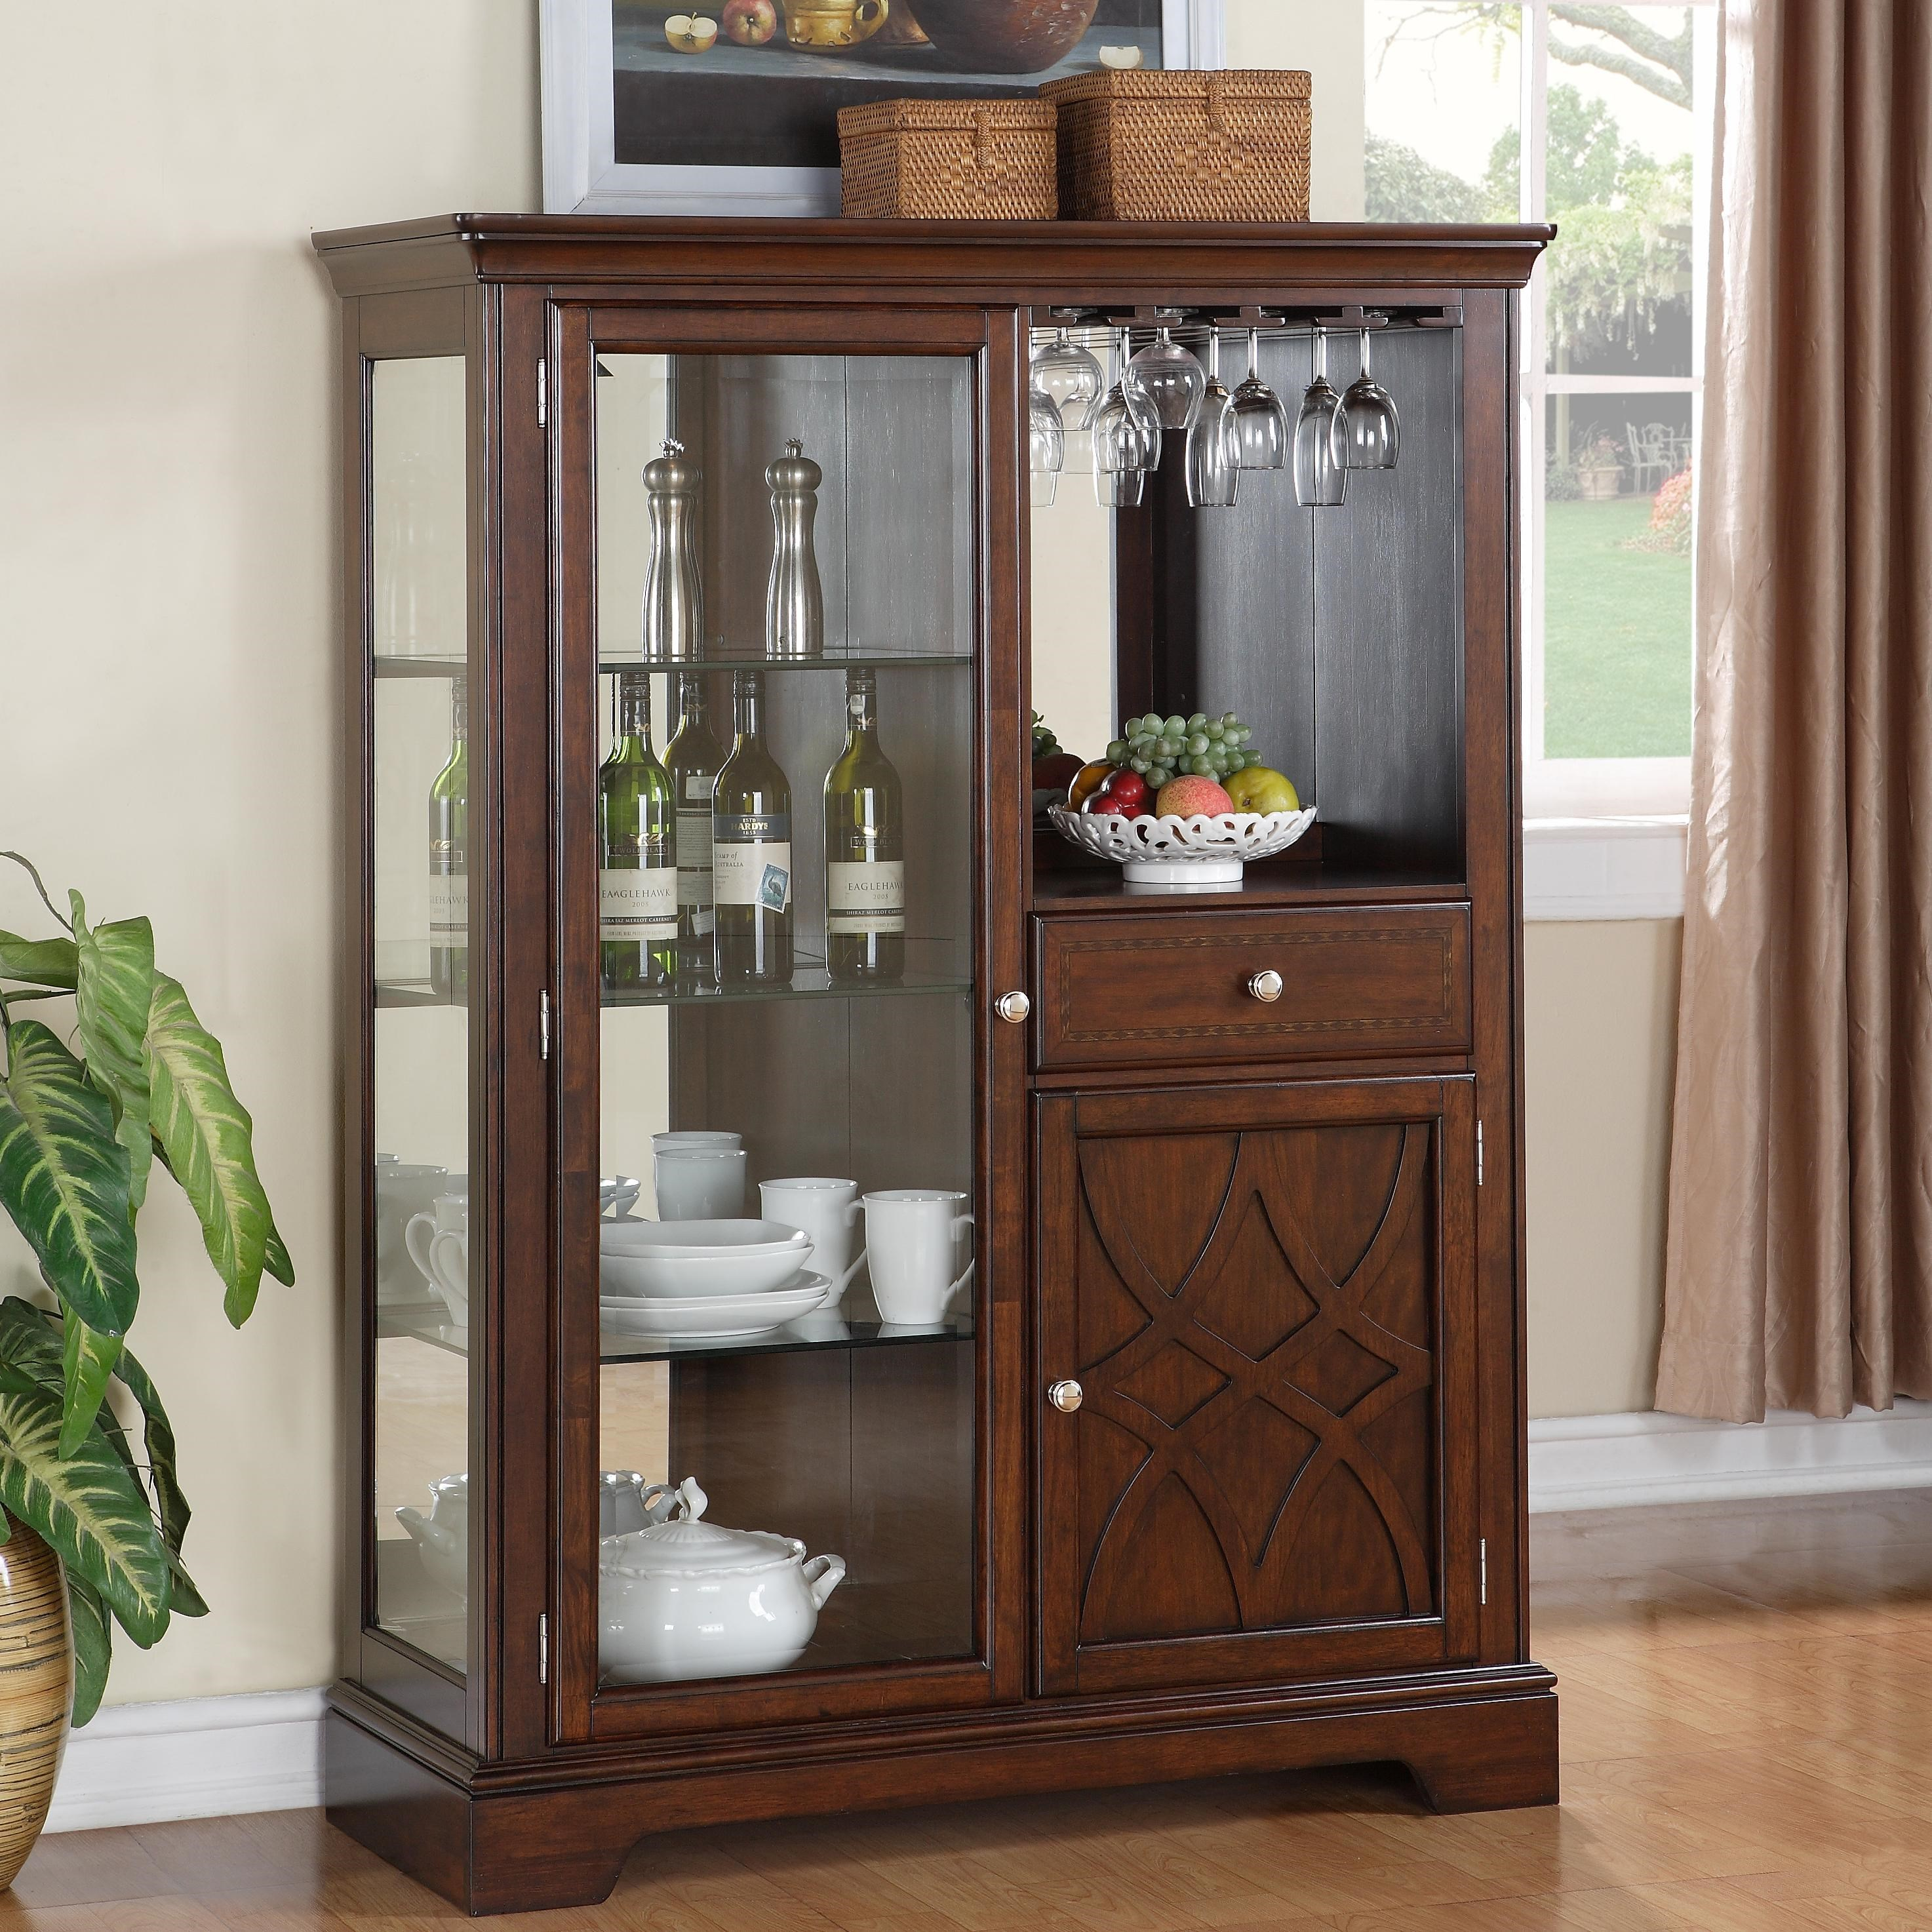 Tall Cabinet with Glass Door Furniture Corner display Glassware Photo Drawer